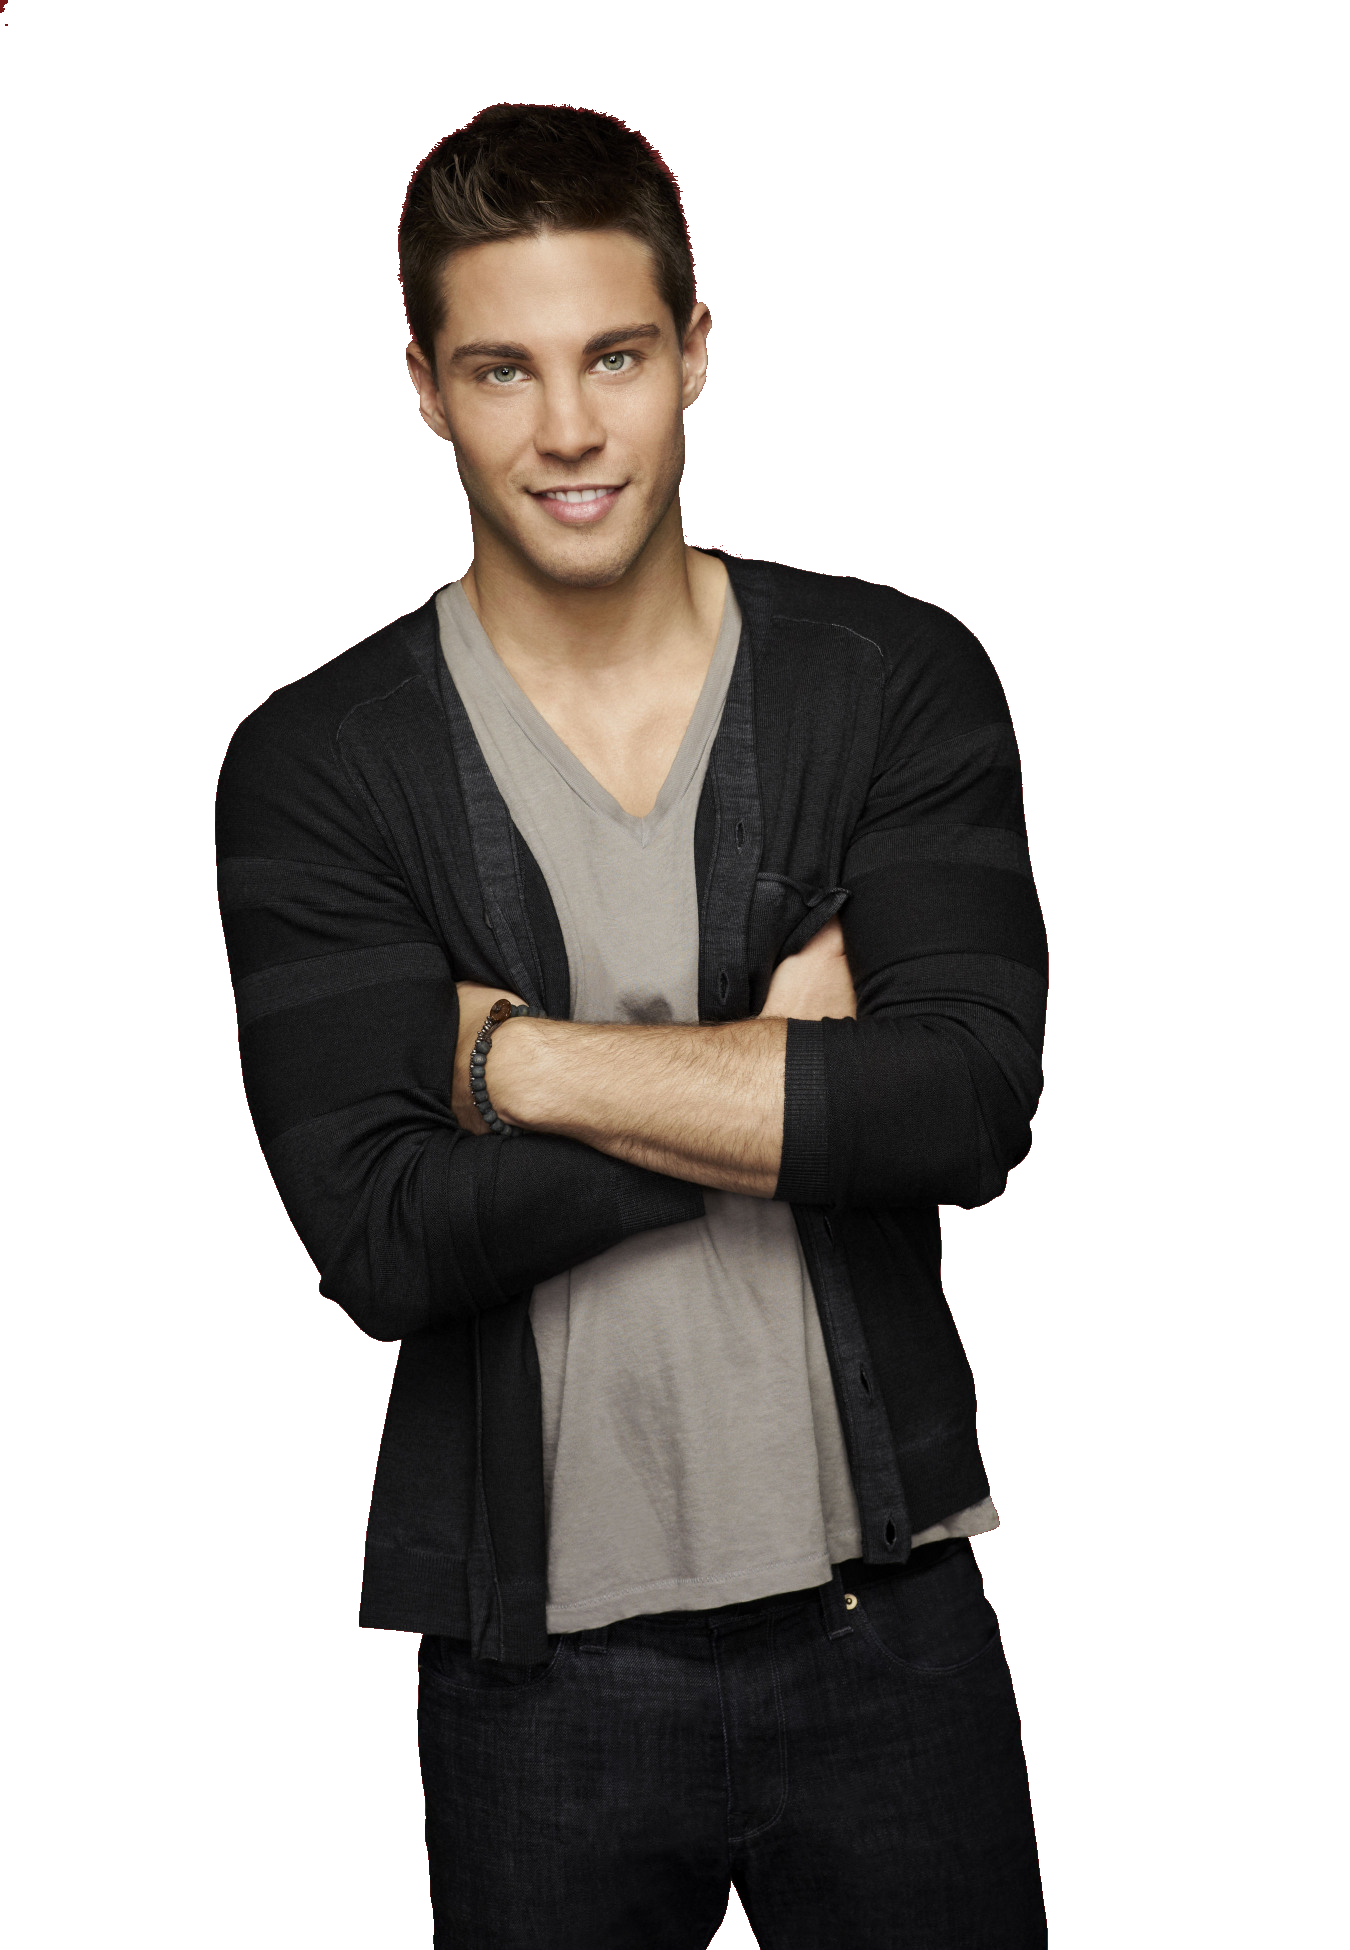 Image - Brody.png - Glee Wiki